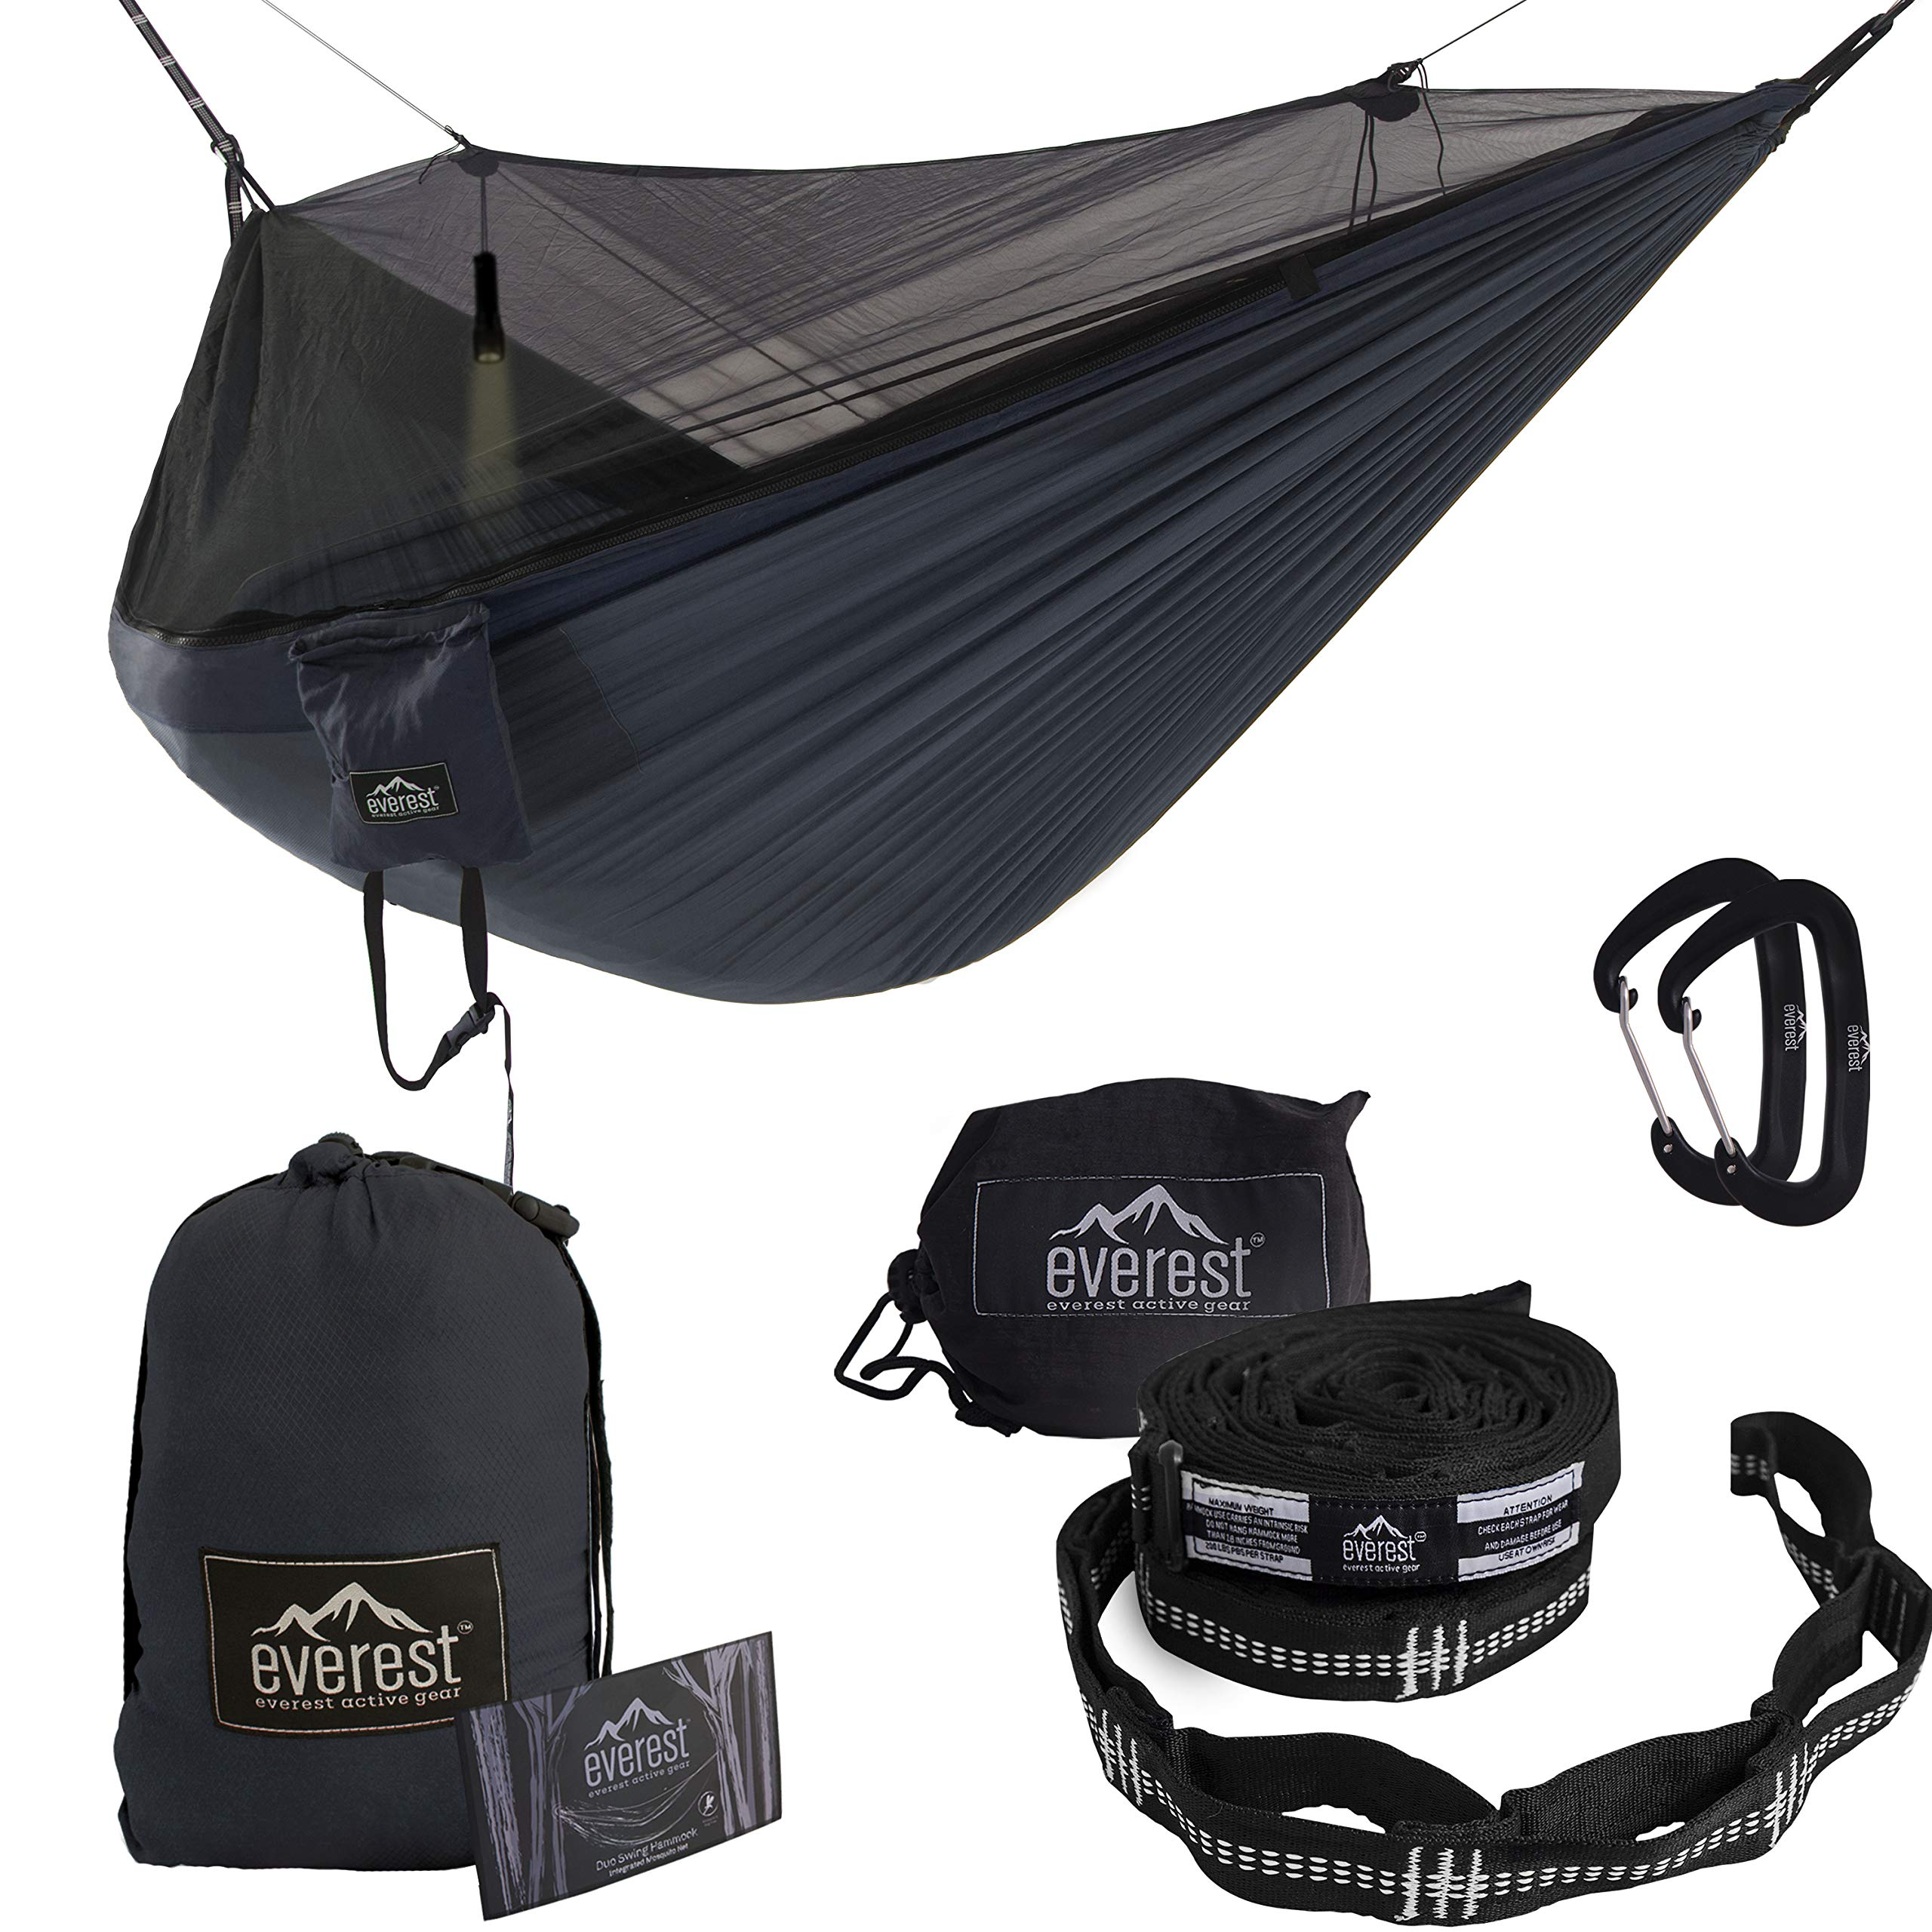 Everest Double Camping Hammock with Mosquito Net | Bug-Free Camping, Backpacking & Survival Outdoor Hammock Tent | Reversible, Integrated, Lightweight, Ripstop Nylon | Navy/Charcoal/Net Black by everest active gear